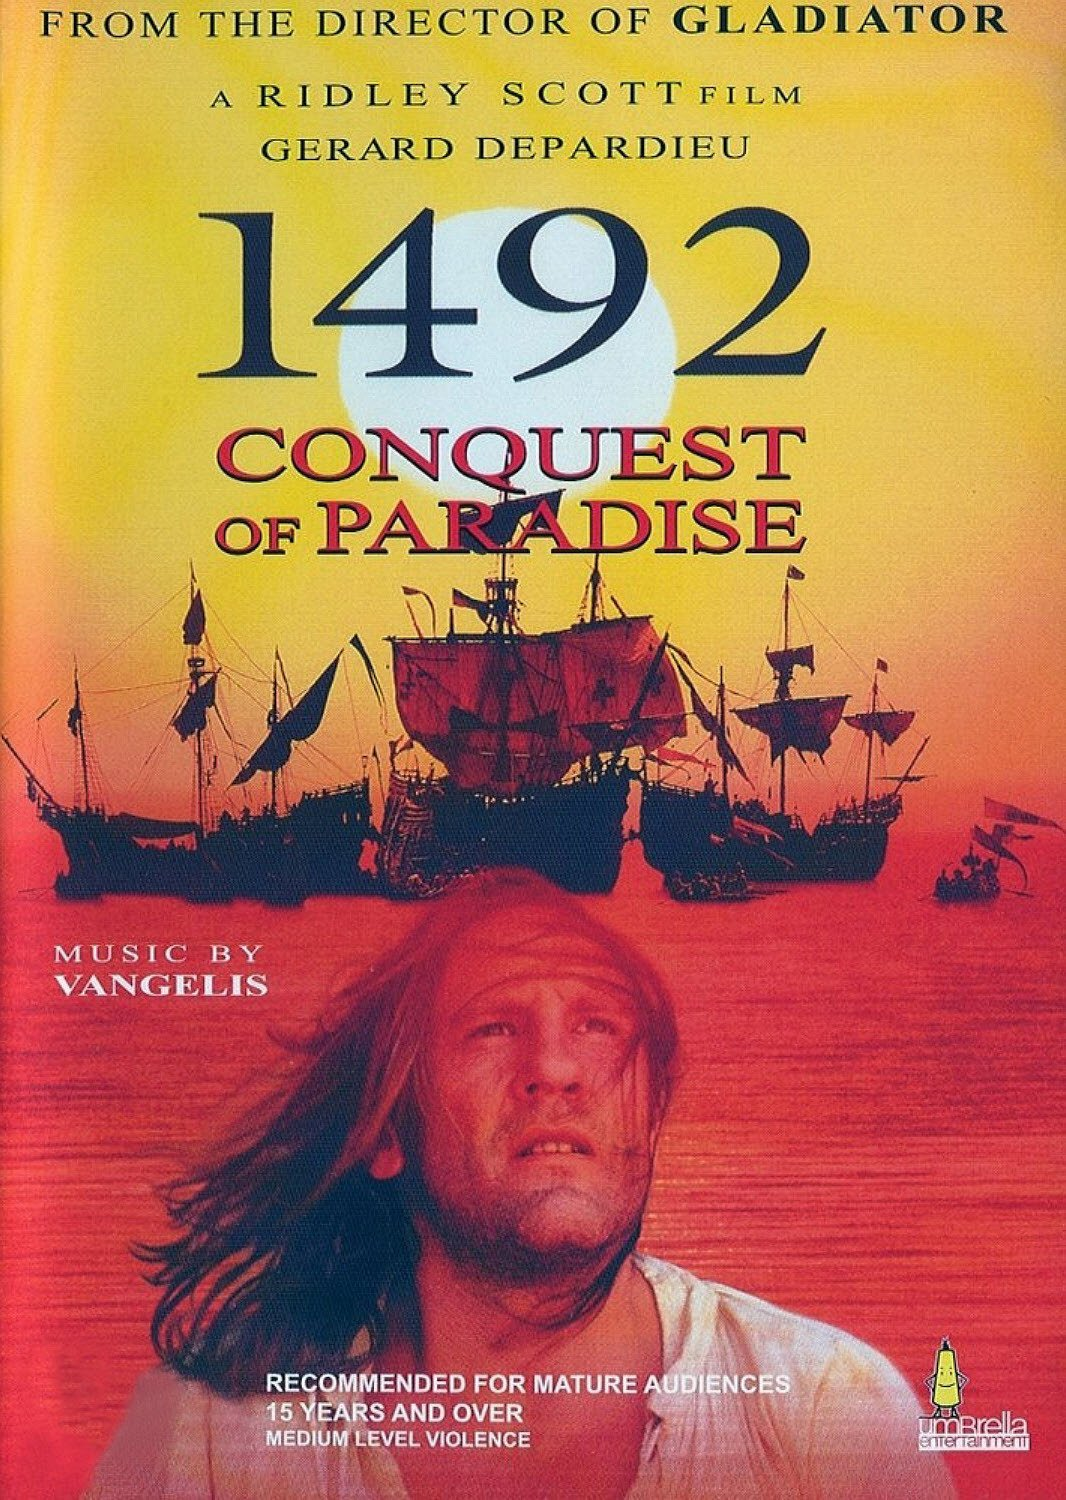 High Resolution Wallpaper   1492: Conquest Of Paradise 1066x1500 px